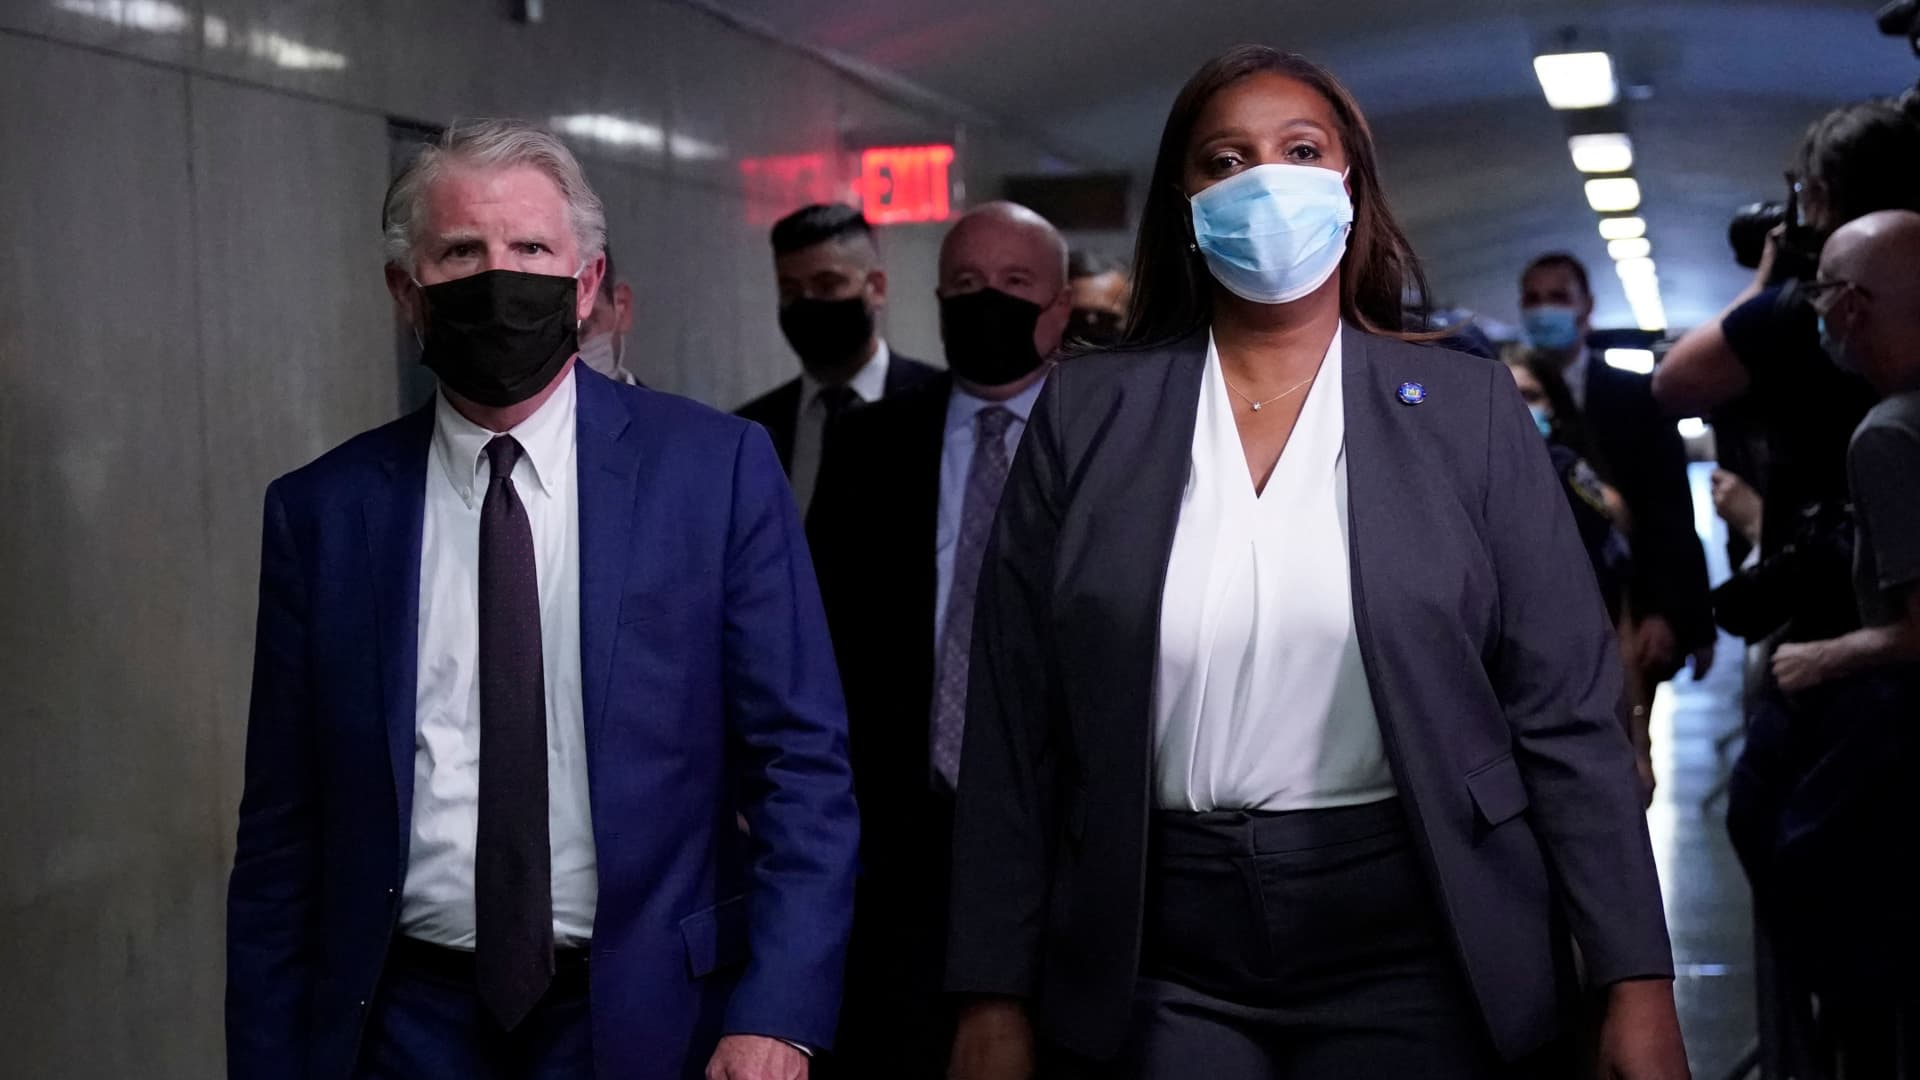 Cyrus Roberts Vance Jr. District Attorney of New York County and New York State Attorney General Letitia James arrive in court for the hearing of Allen Weisselberg, former US President Donald Trumps company chief financial officer at the criminal court in lower Manhattan in New York on July 1, 2021.